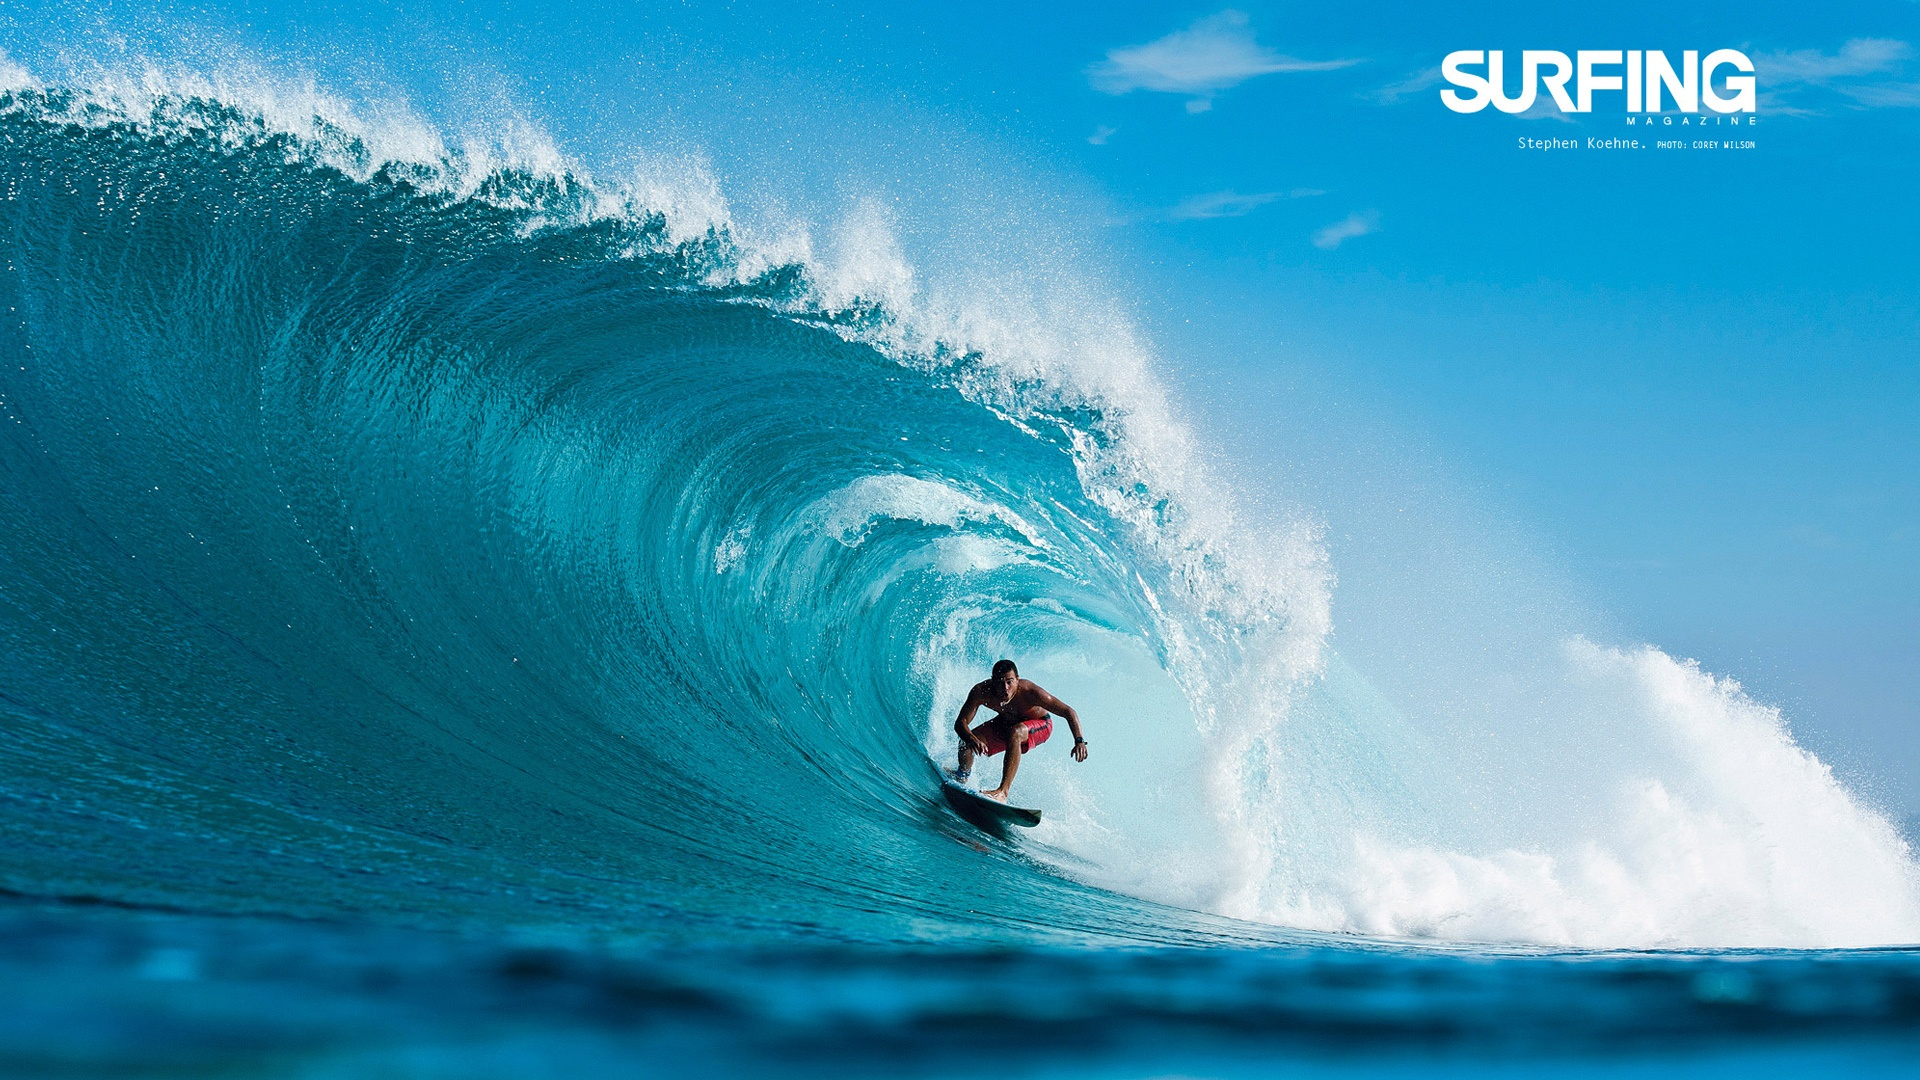 1920x1080 - Surfing Wallpapers 22